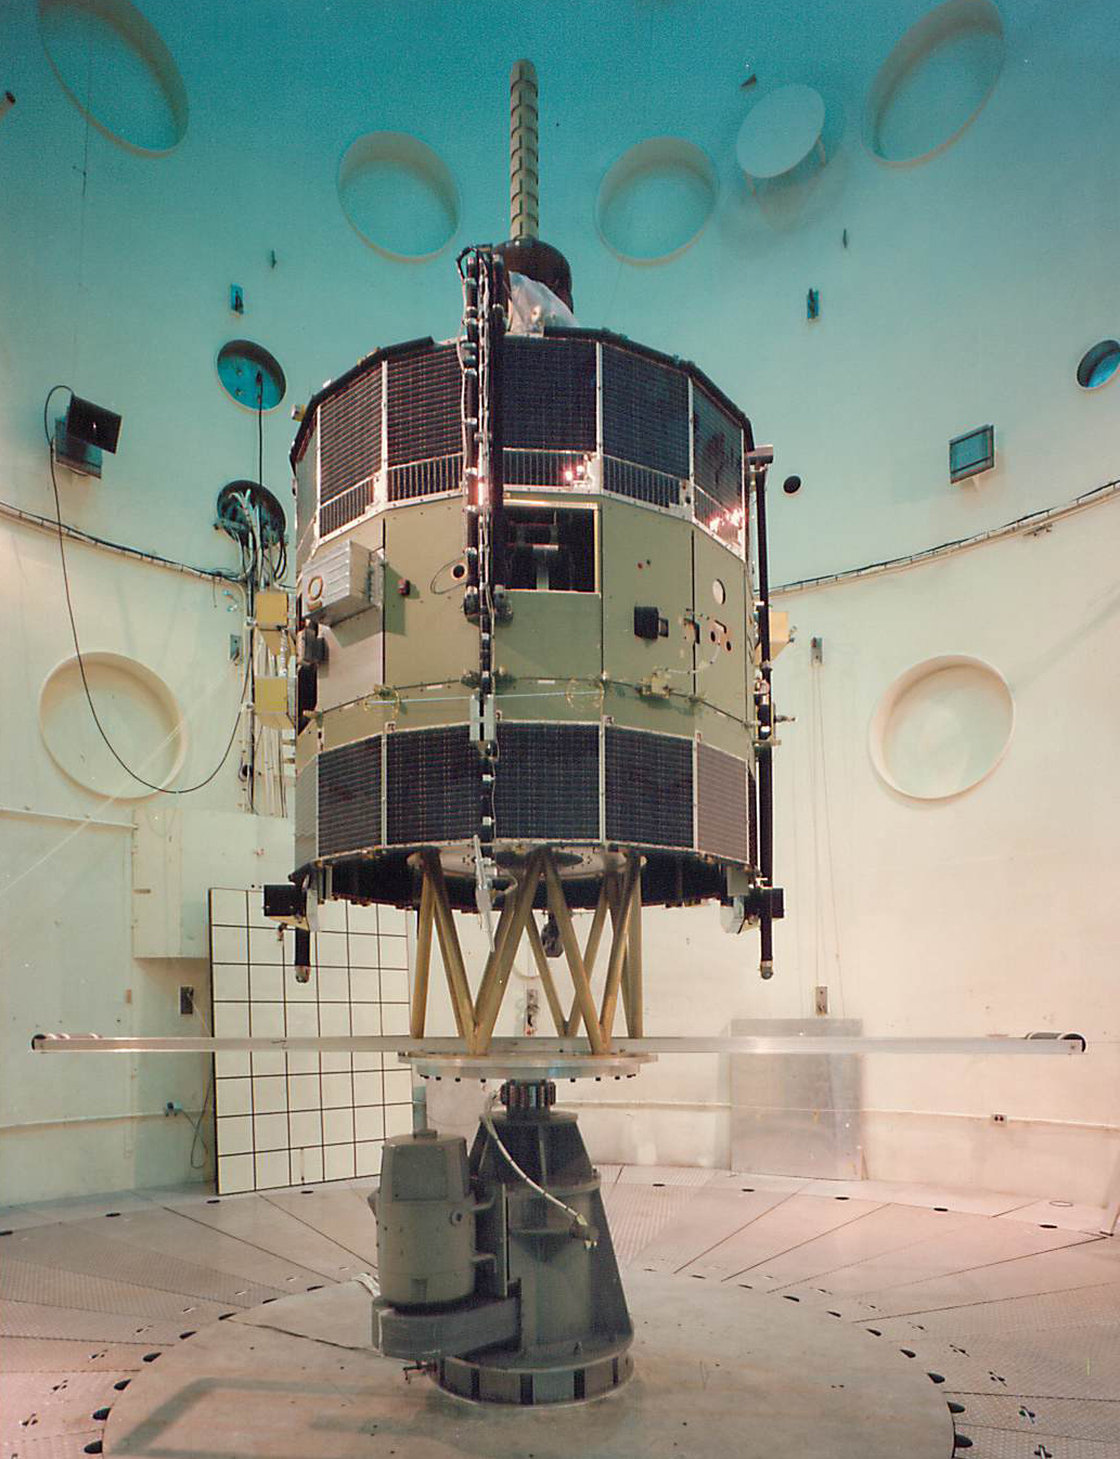 ISEE-3 at a tender age, sometime before its 1978 launch.